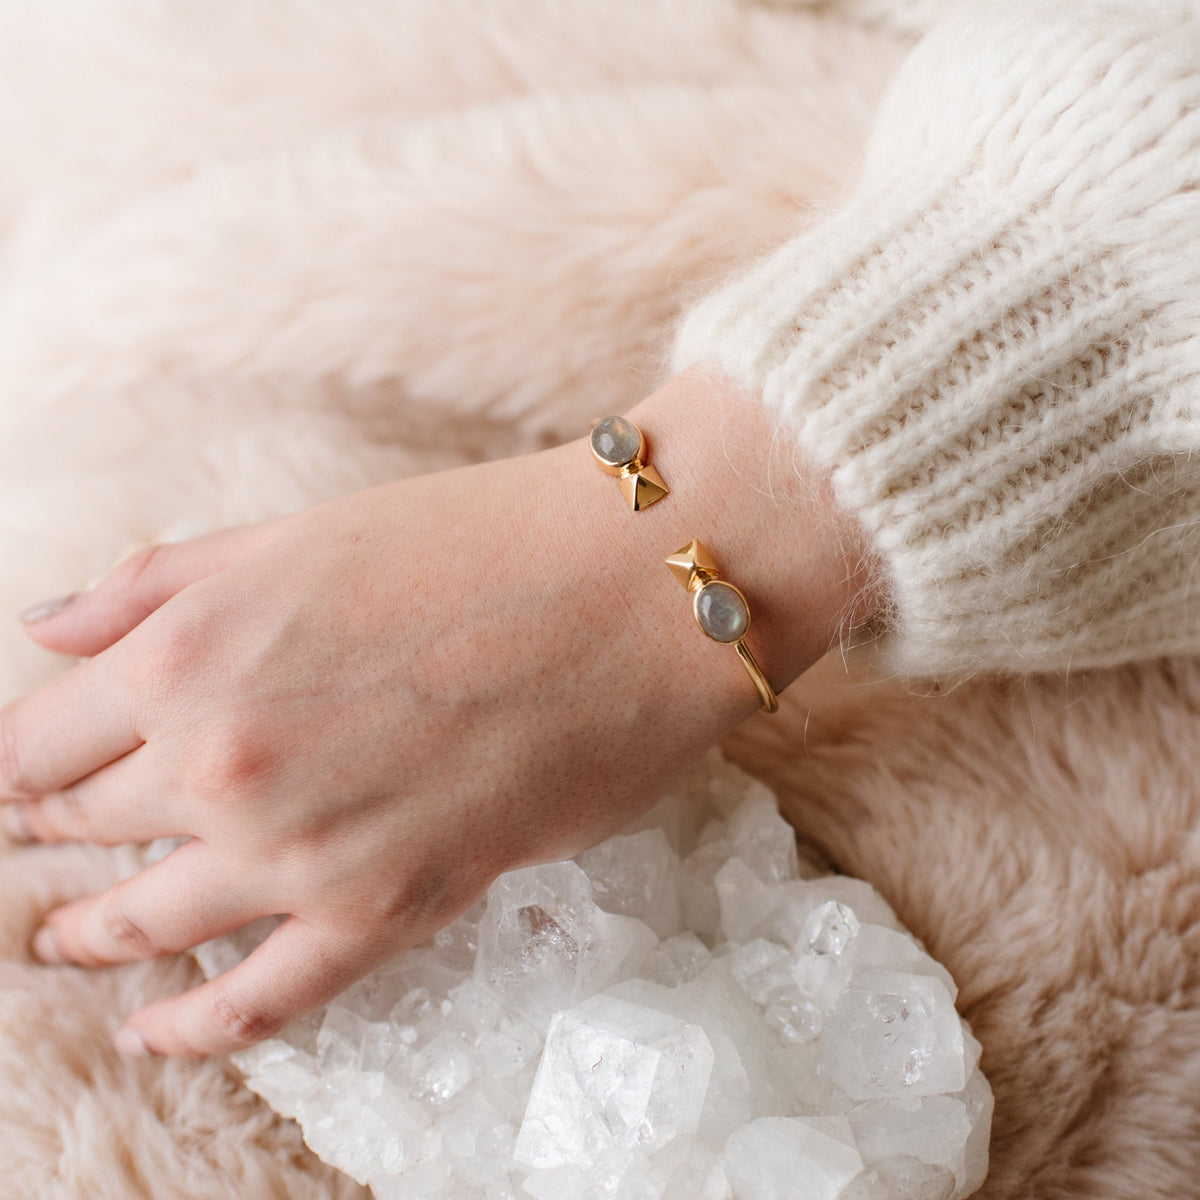 GLEE CUFF - LABRADORITE & GOLD - SO PRETTY CARA COTTER